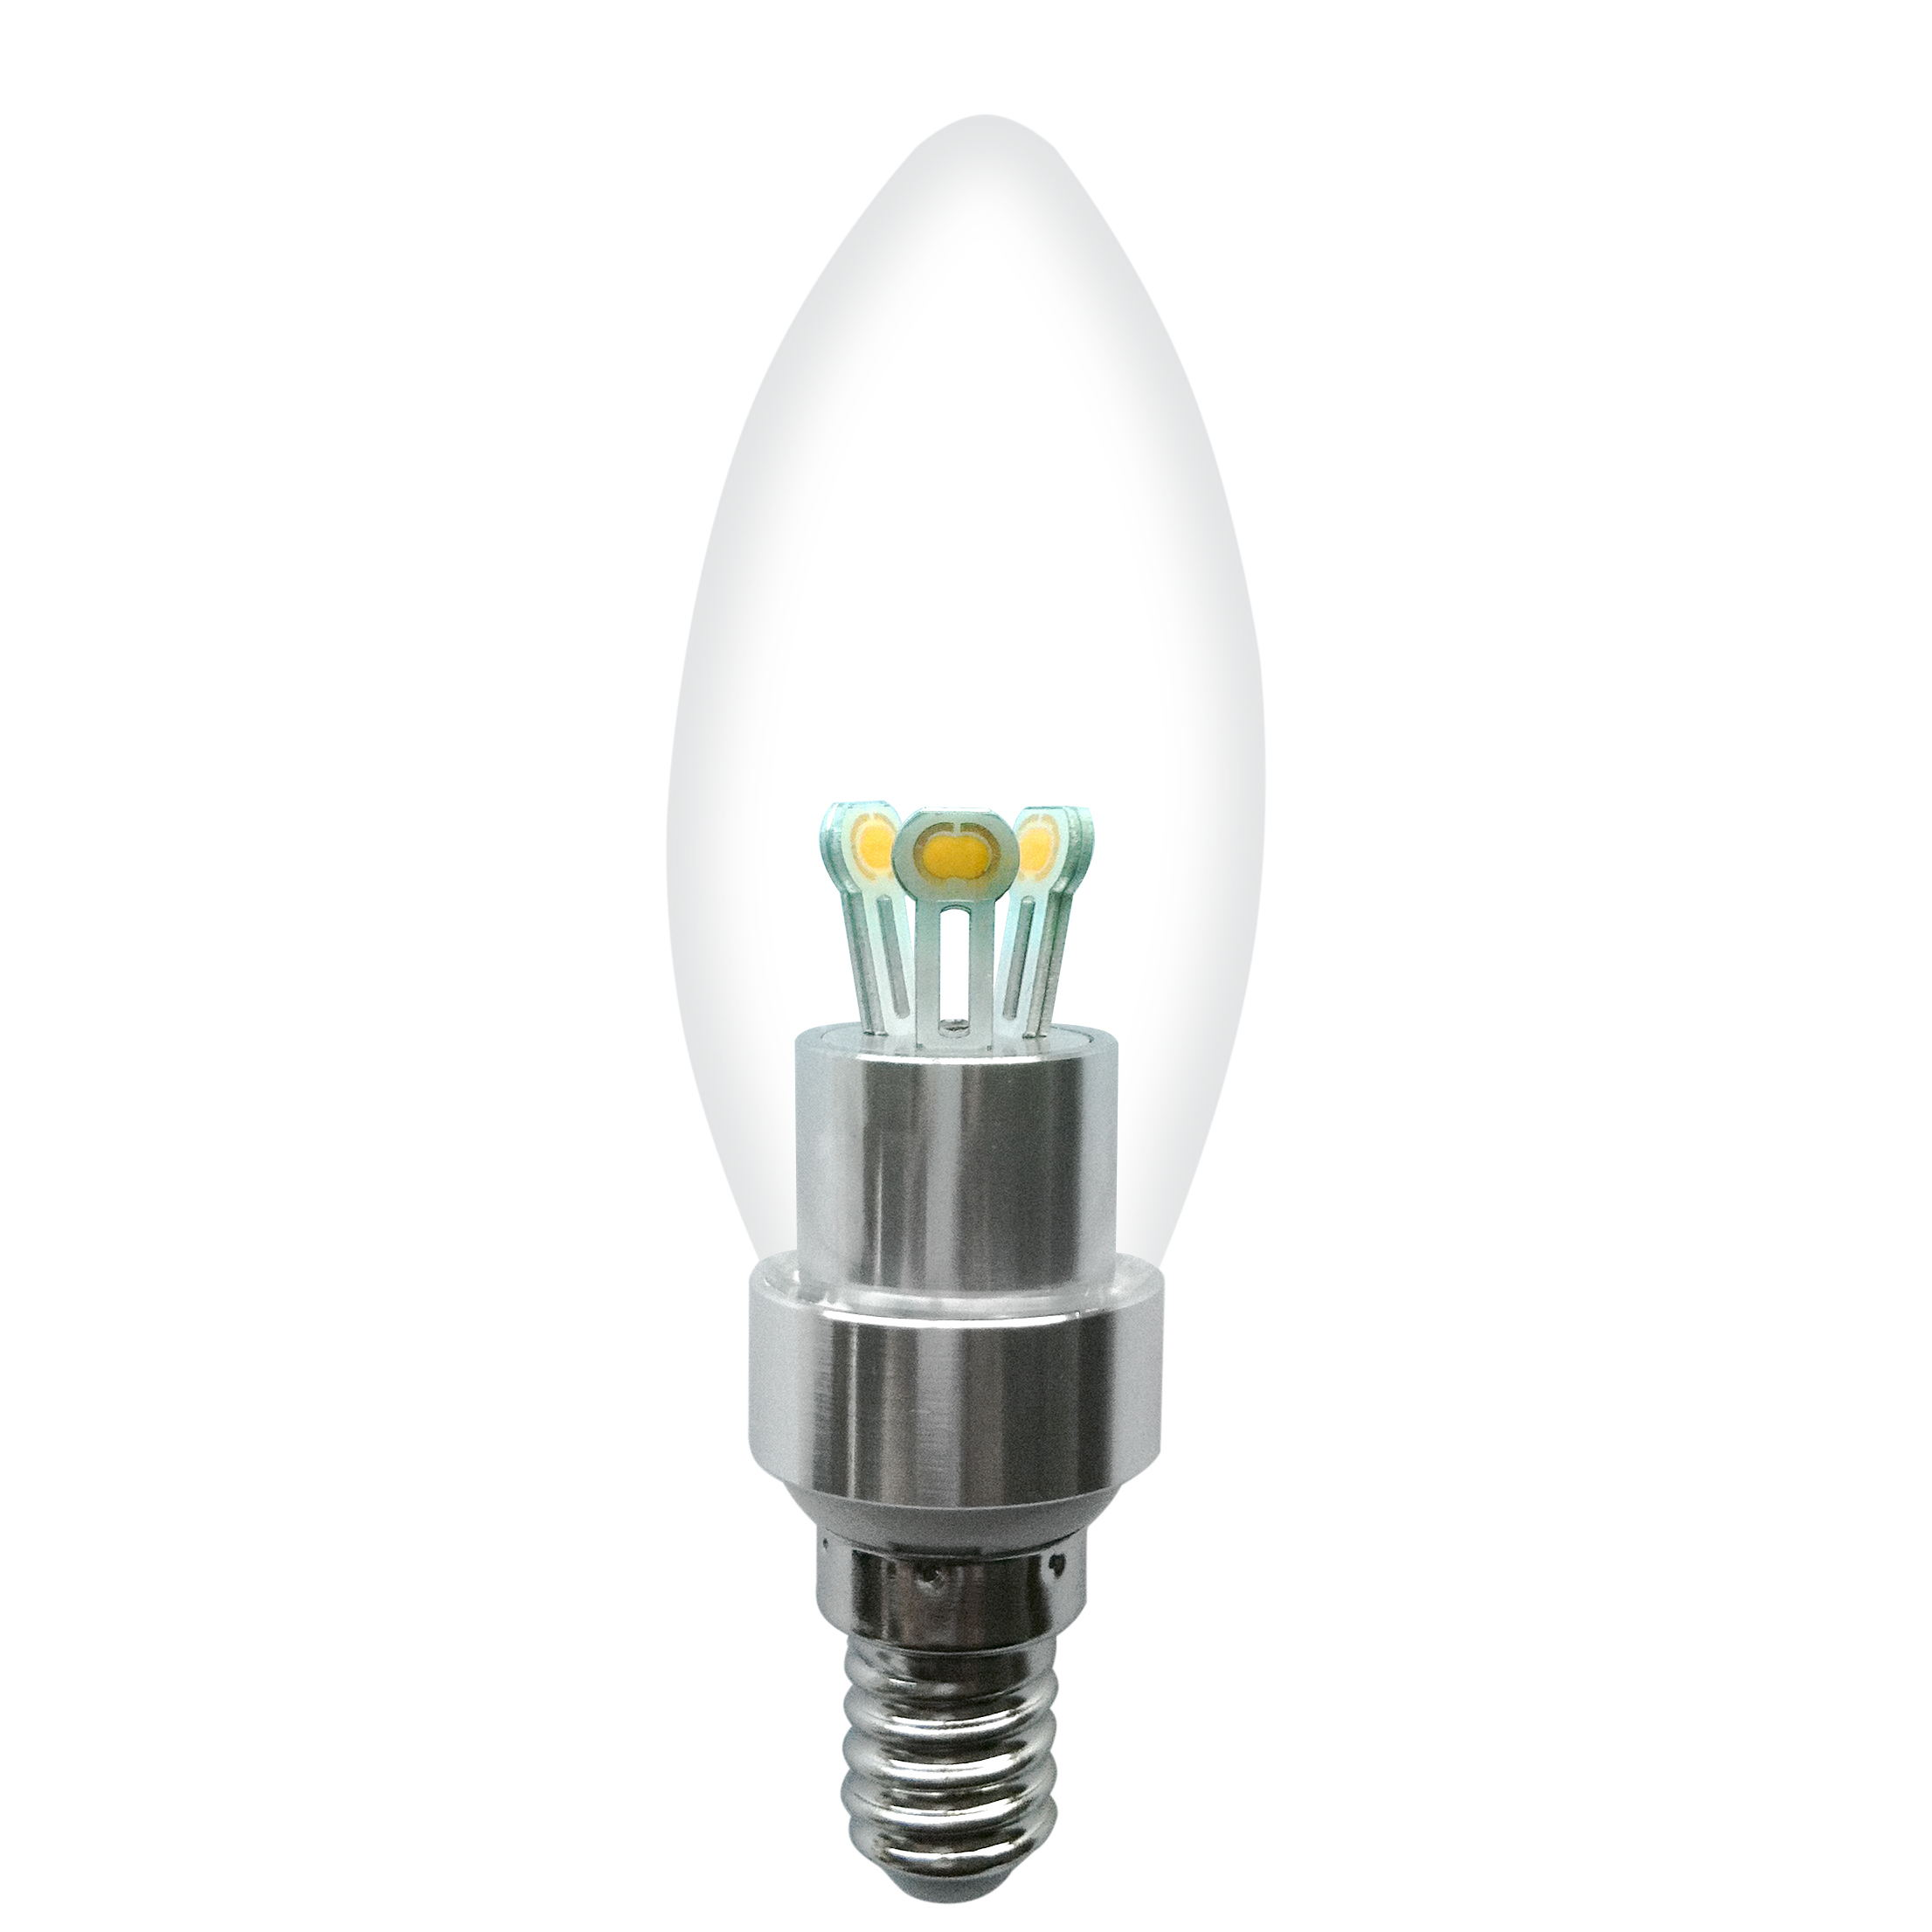 Dimmable LED Candle Bulb High Quality Silver Aluminum 3W Ra85 E14 180lm 85-265V COB LED Chip Clear/Frosted/Milky Glass Cover